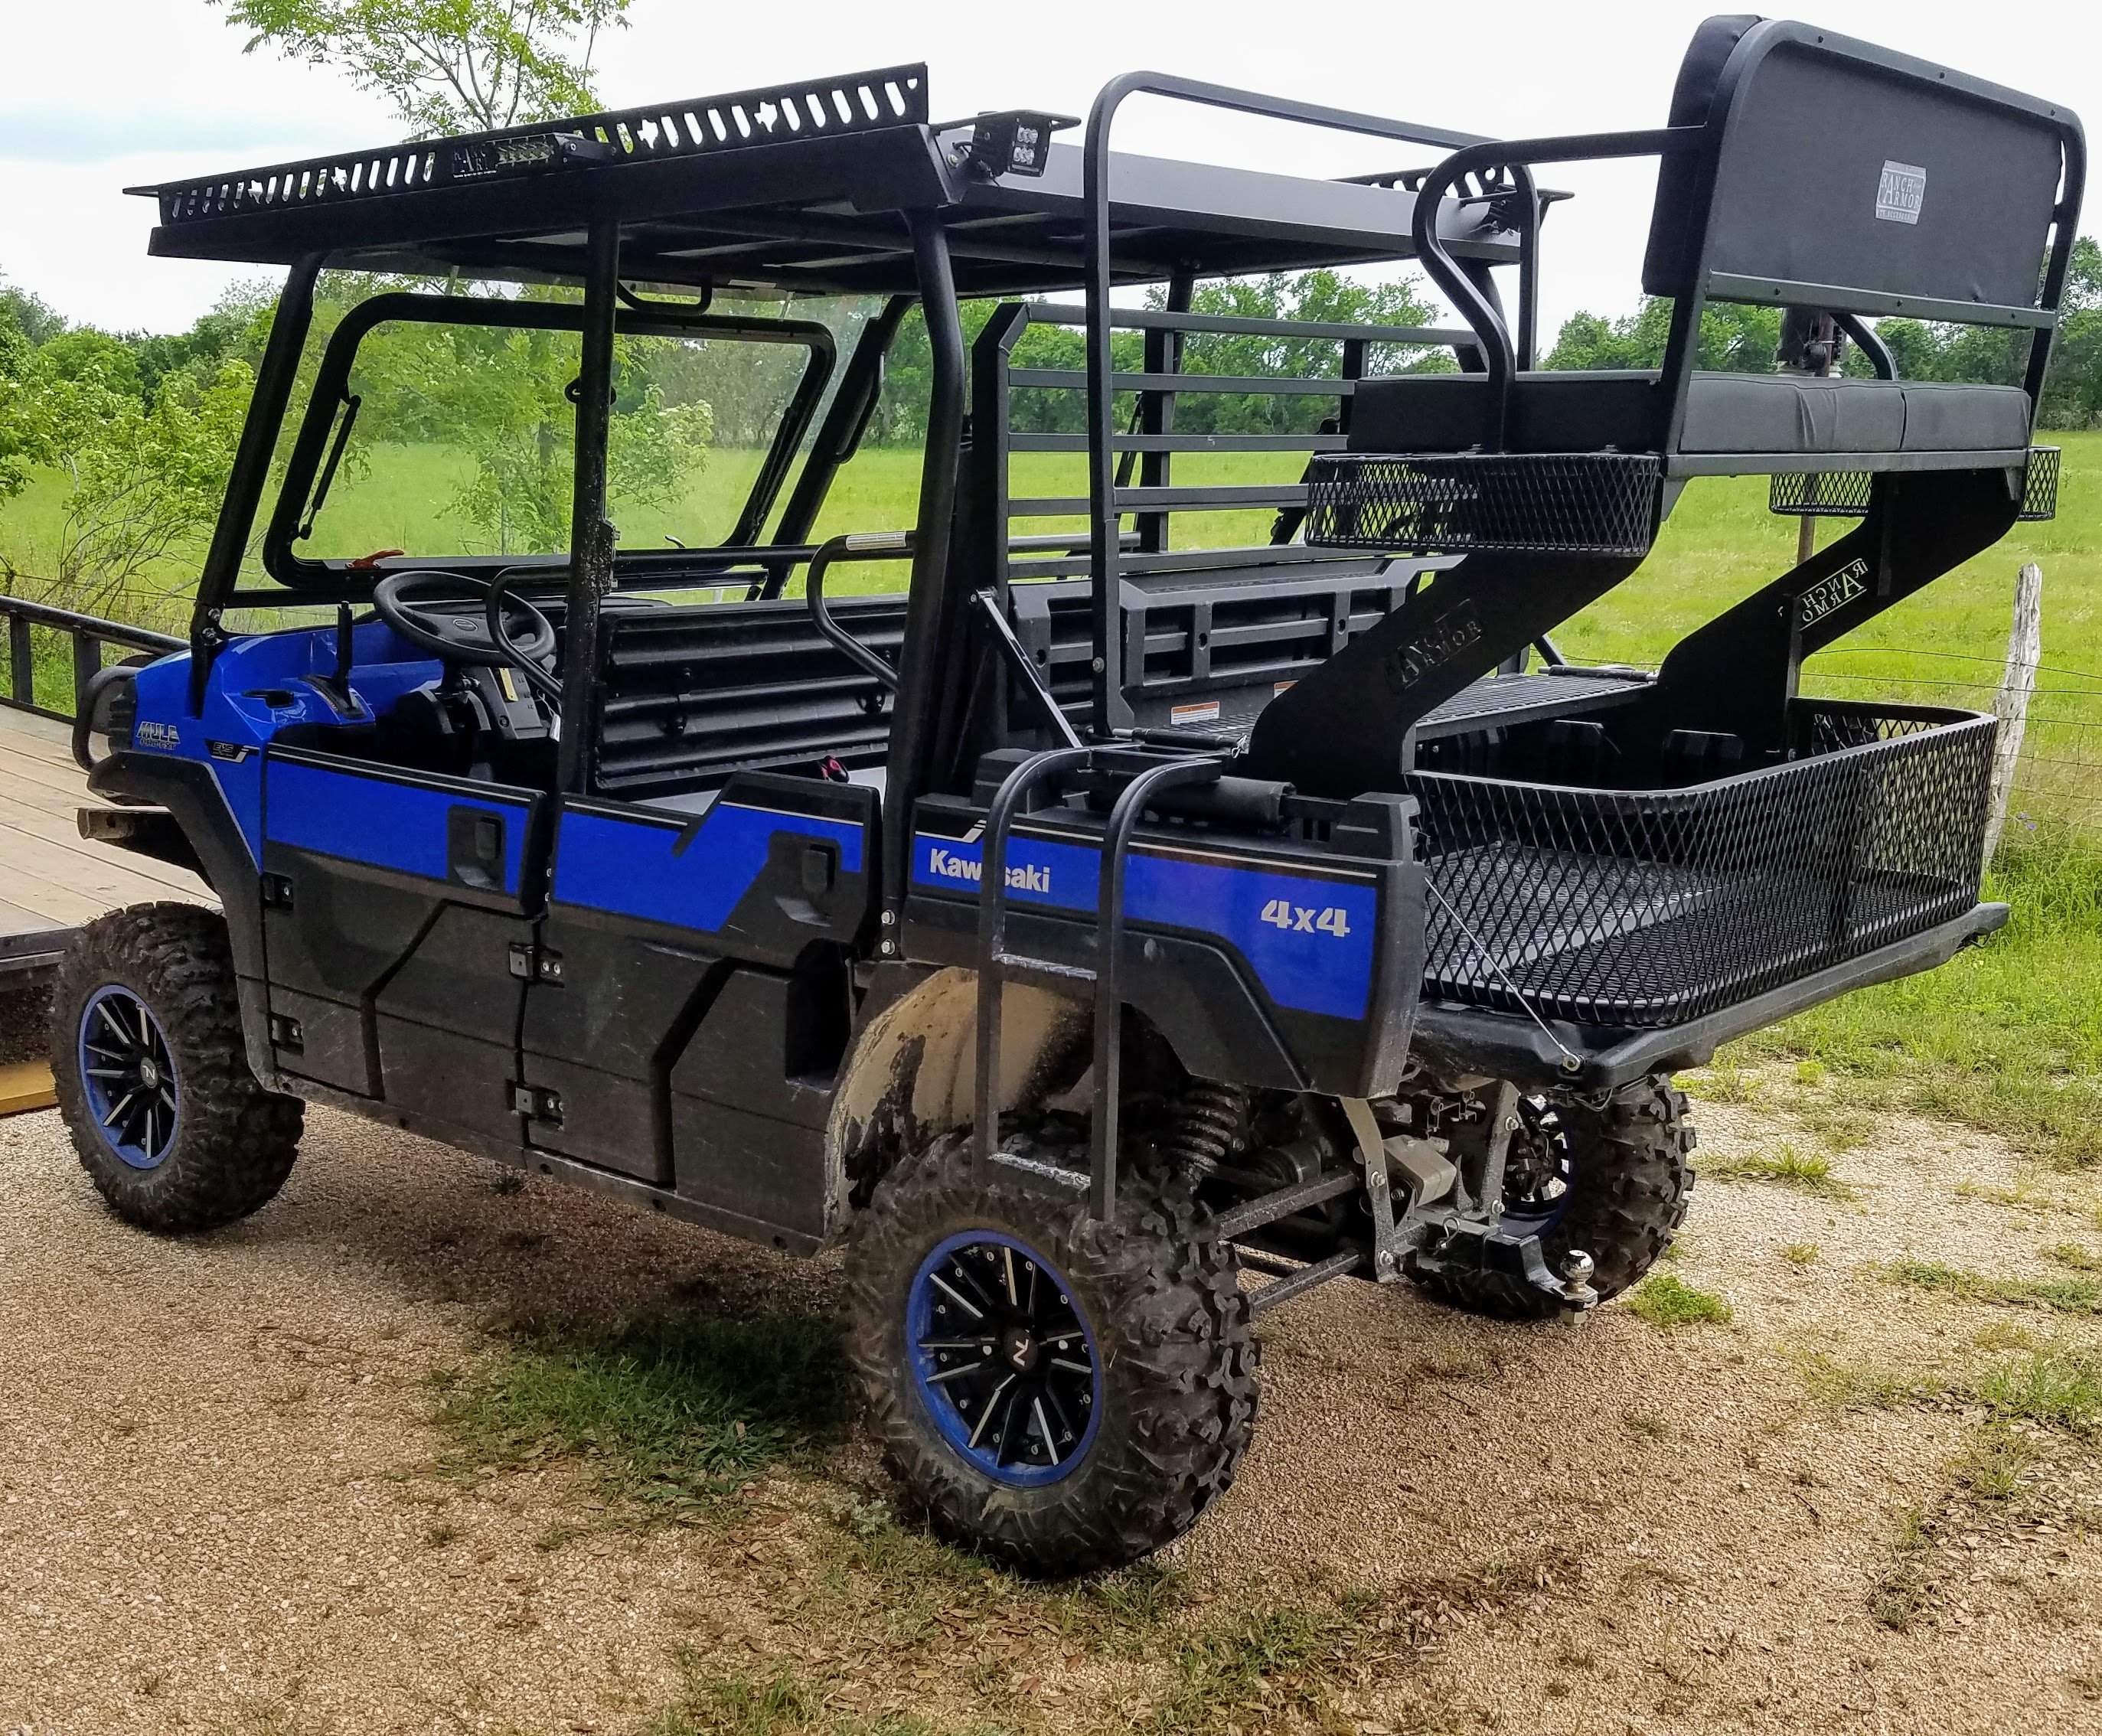 kawasaki-mule-pro-fxt-high-seat-with-bed-extension.jpg